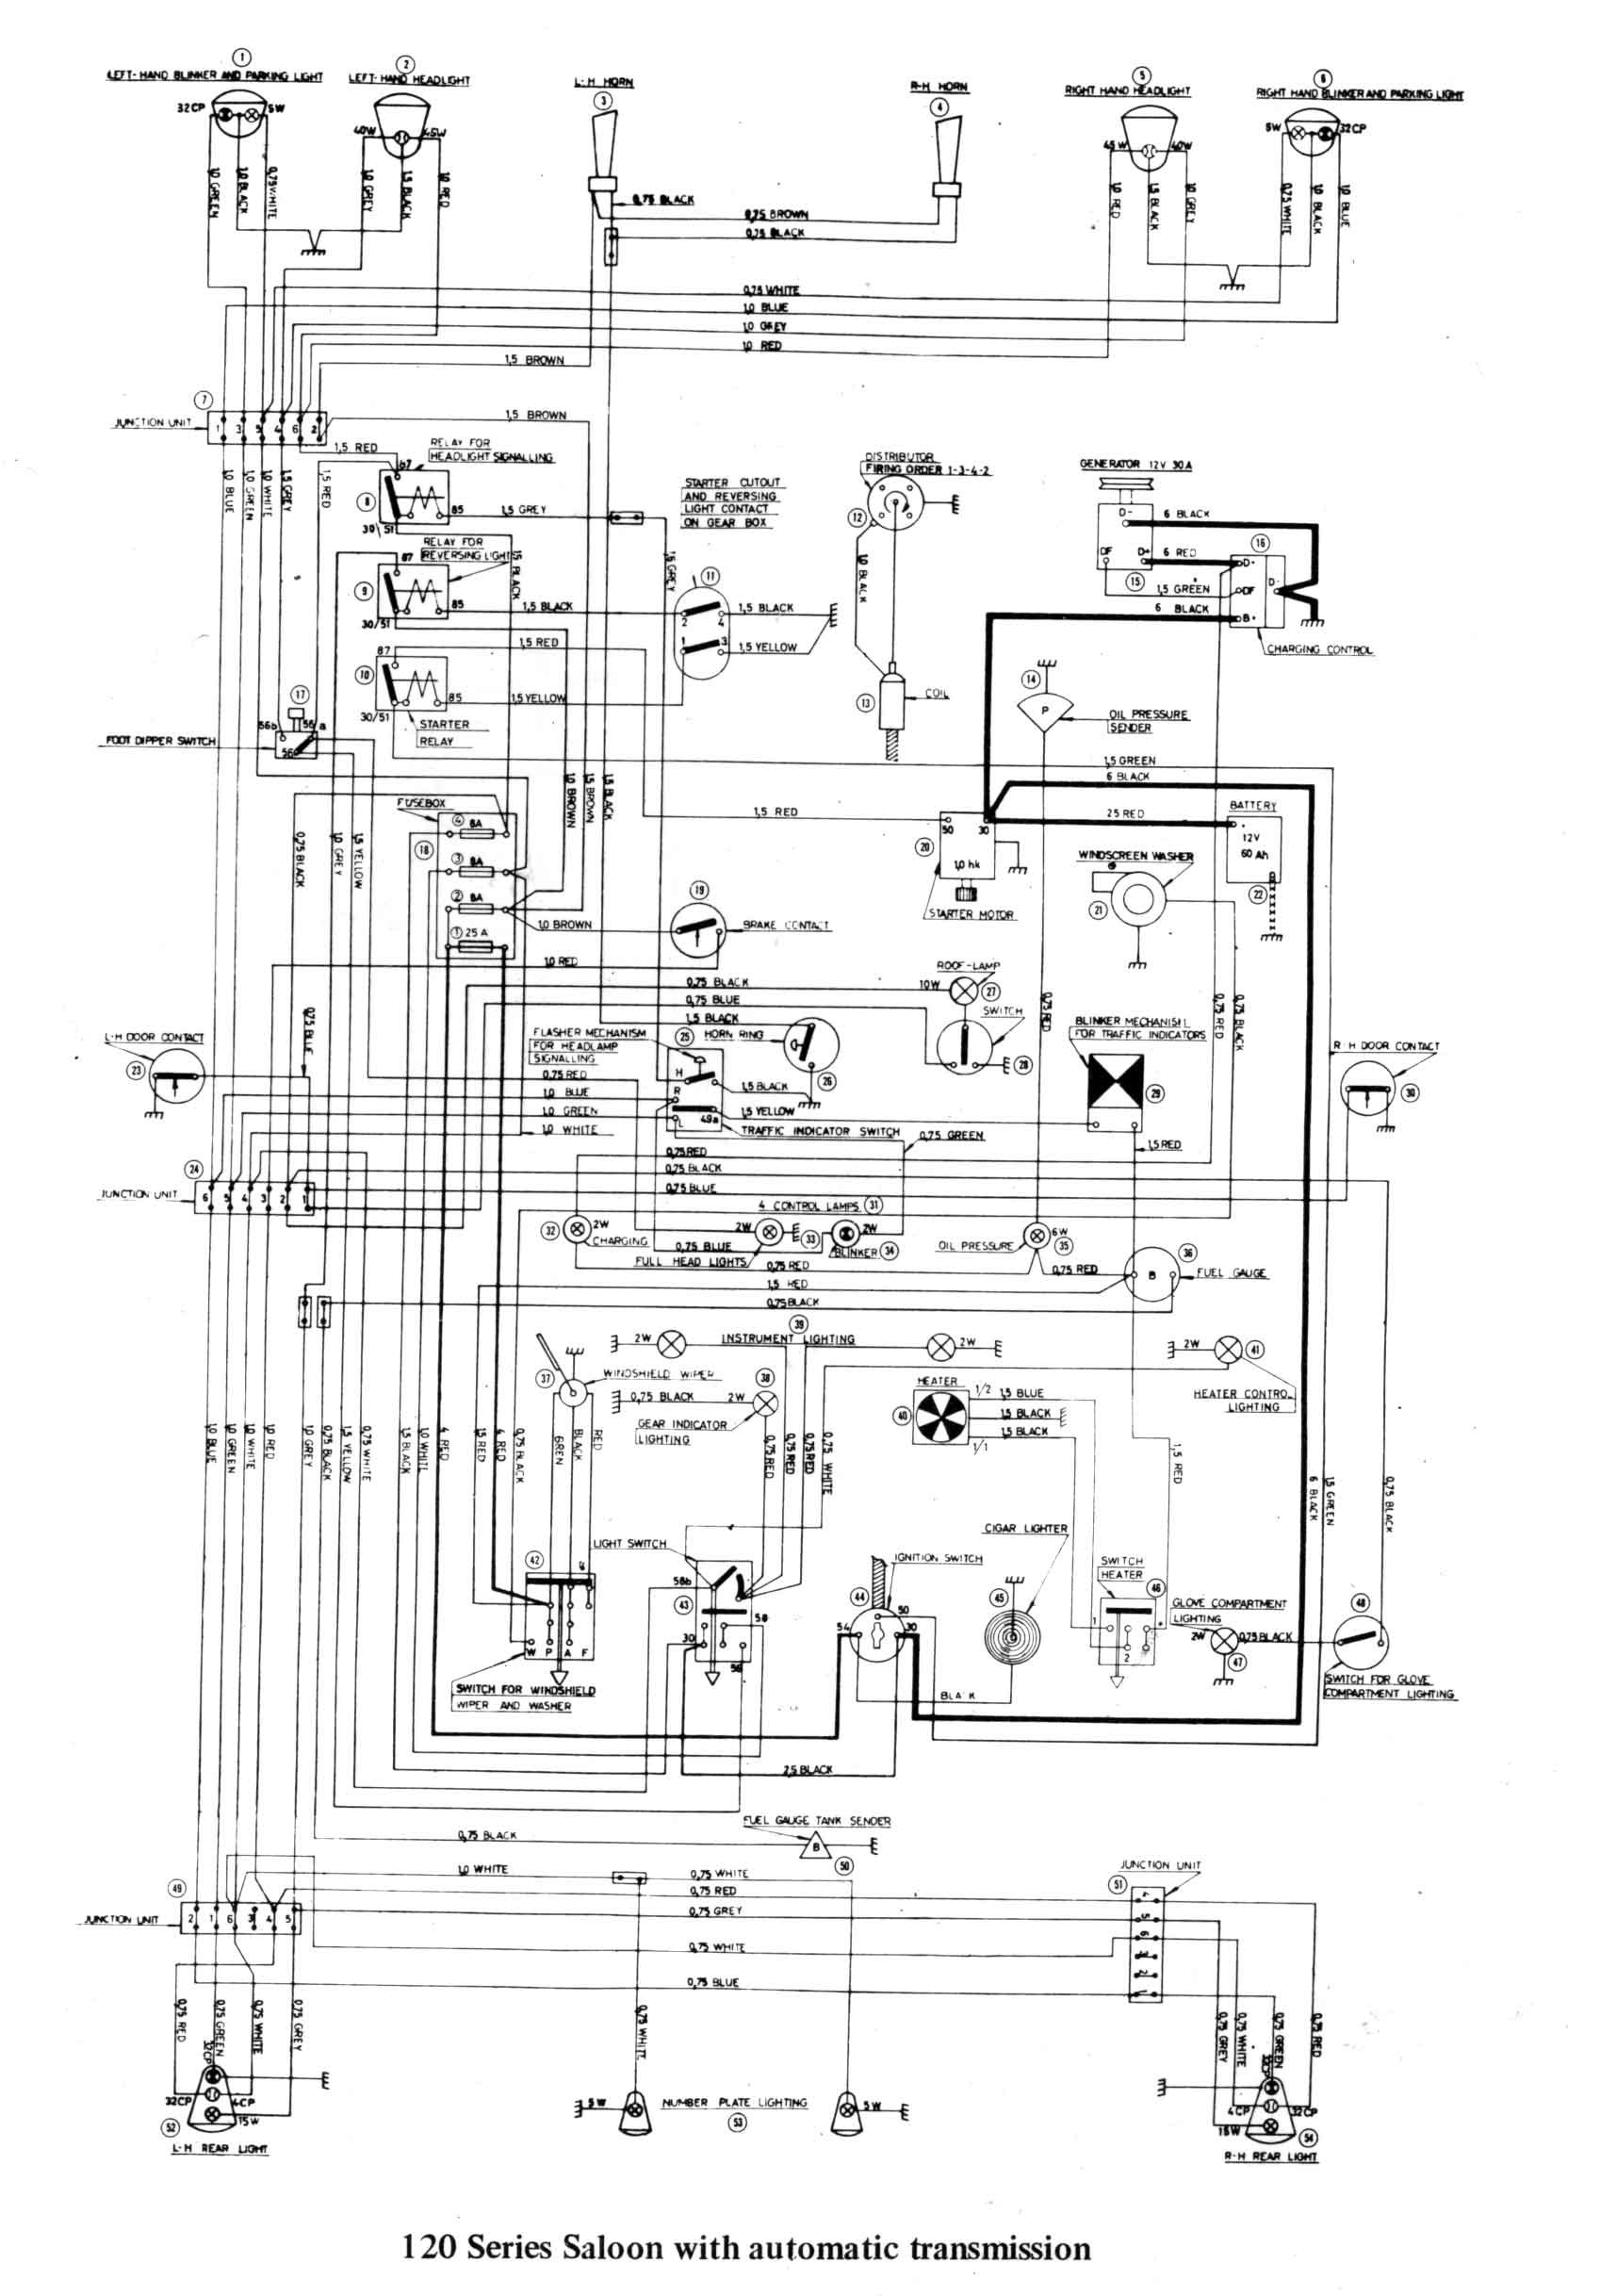 1998 volvo v70 engine diagram 7 wire rv plug electrical schematic